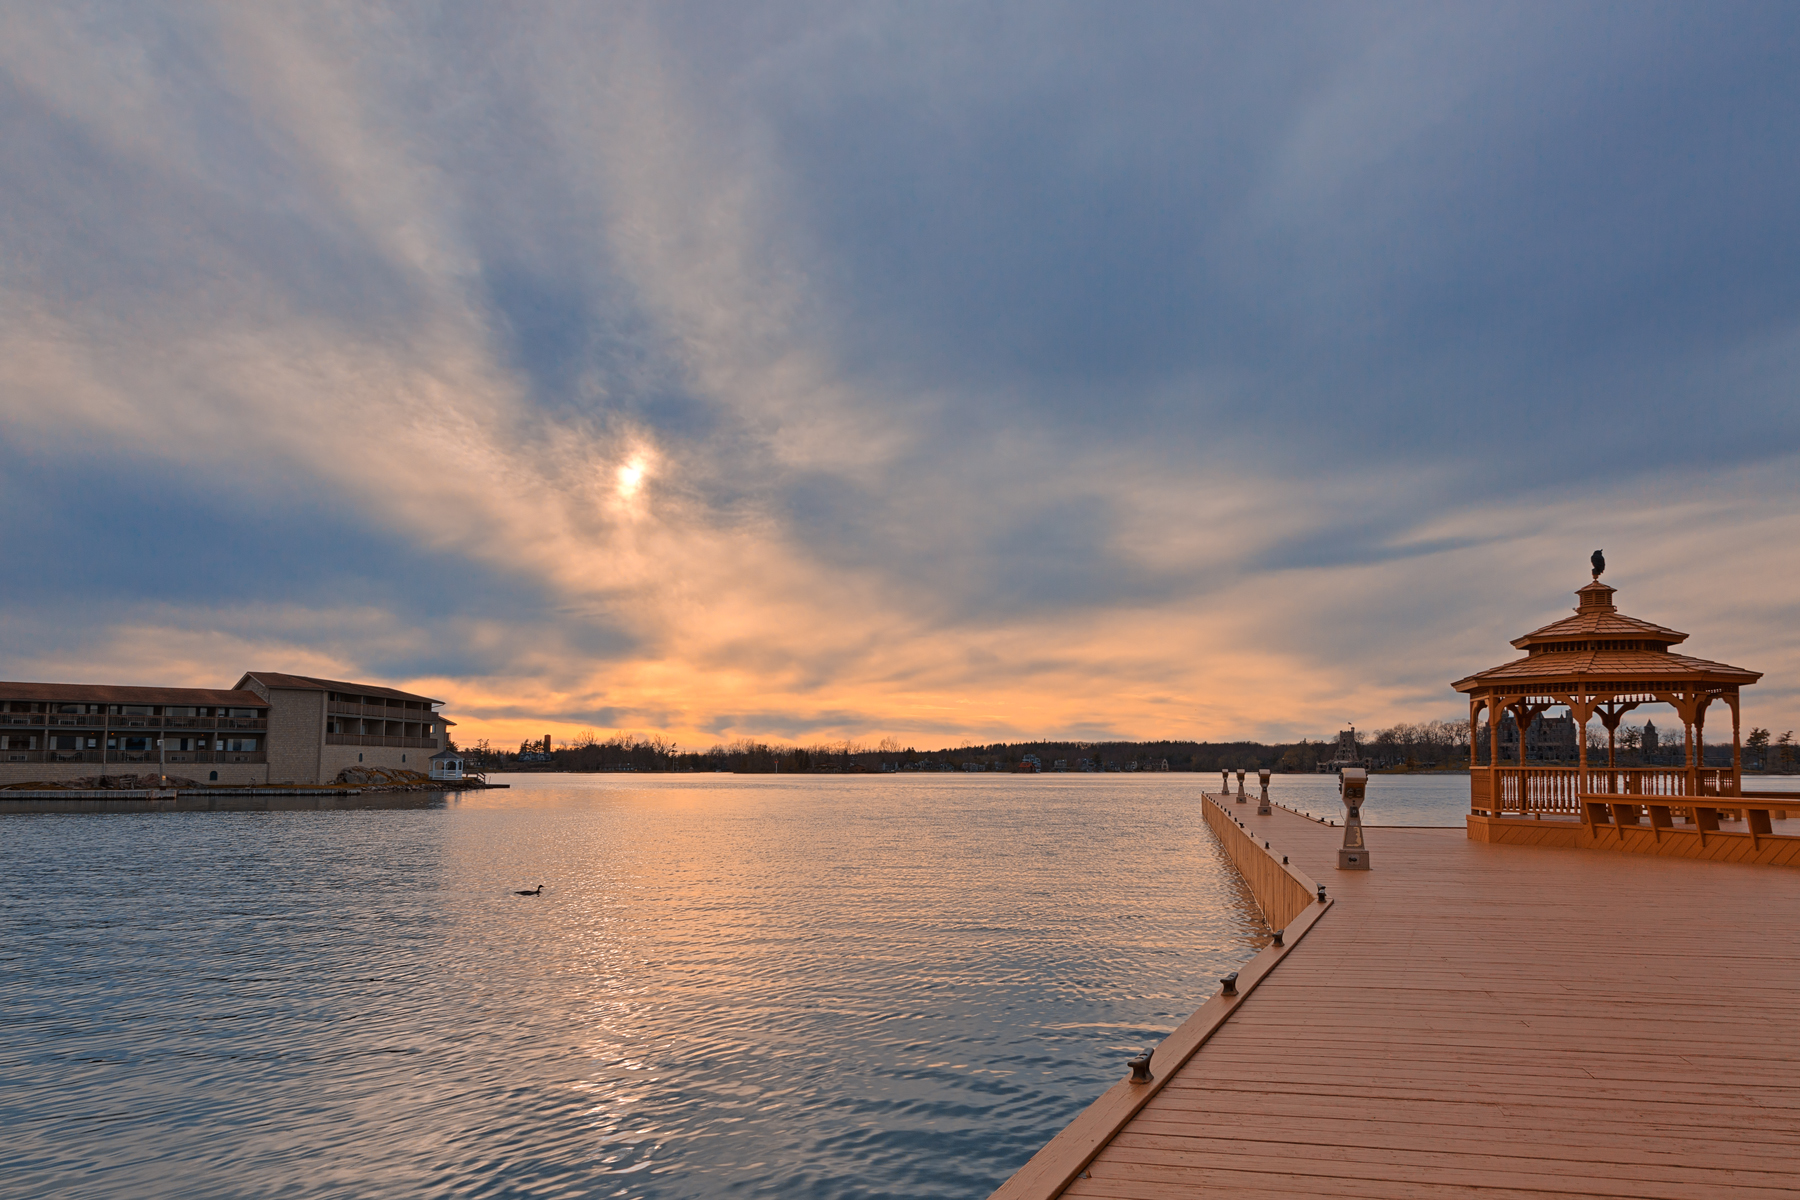 Cloudy Alexandria Bay Sunset - HDR, 1000, Promenade, Shades, Shade, HQ Photo